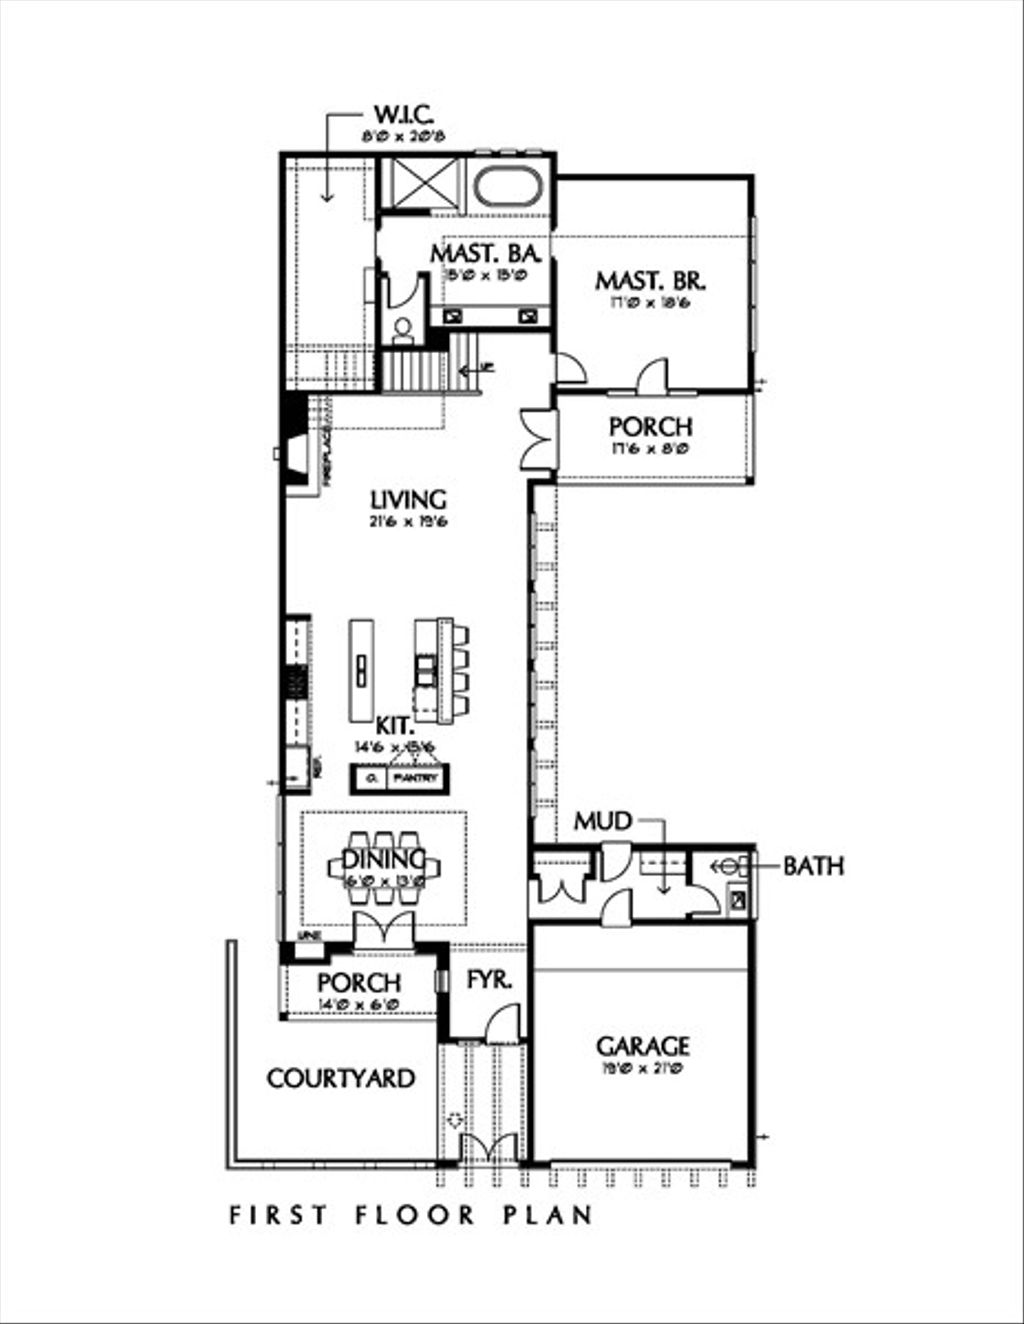 Modern style house plan 3 beds 3 baths 3928 sq ft plan 449